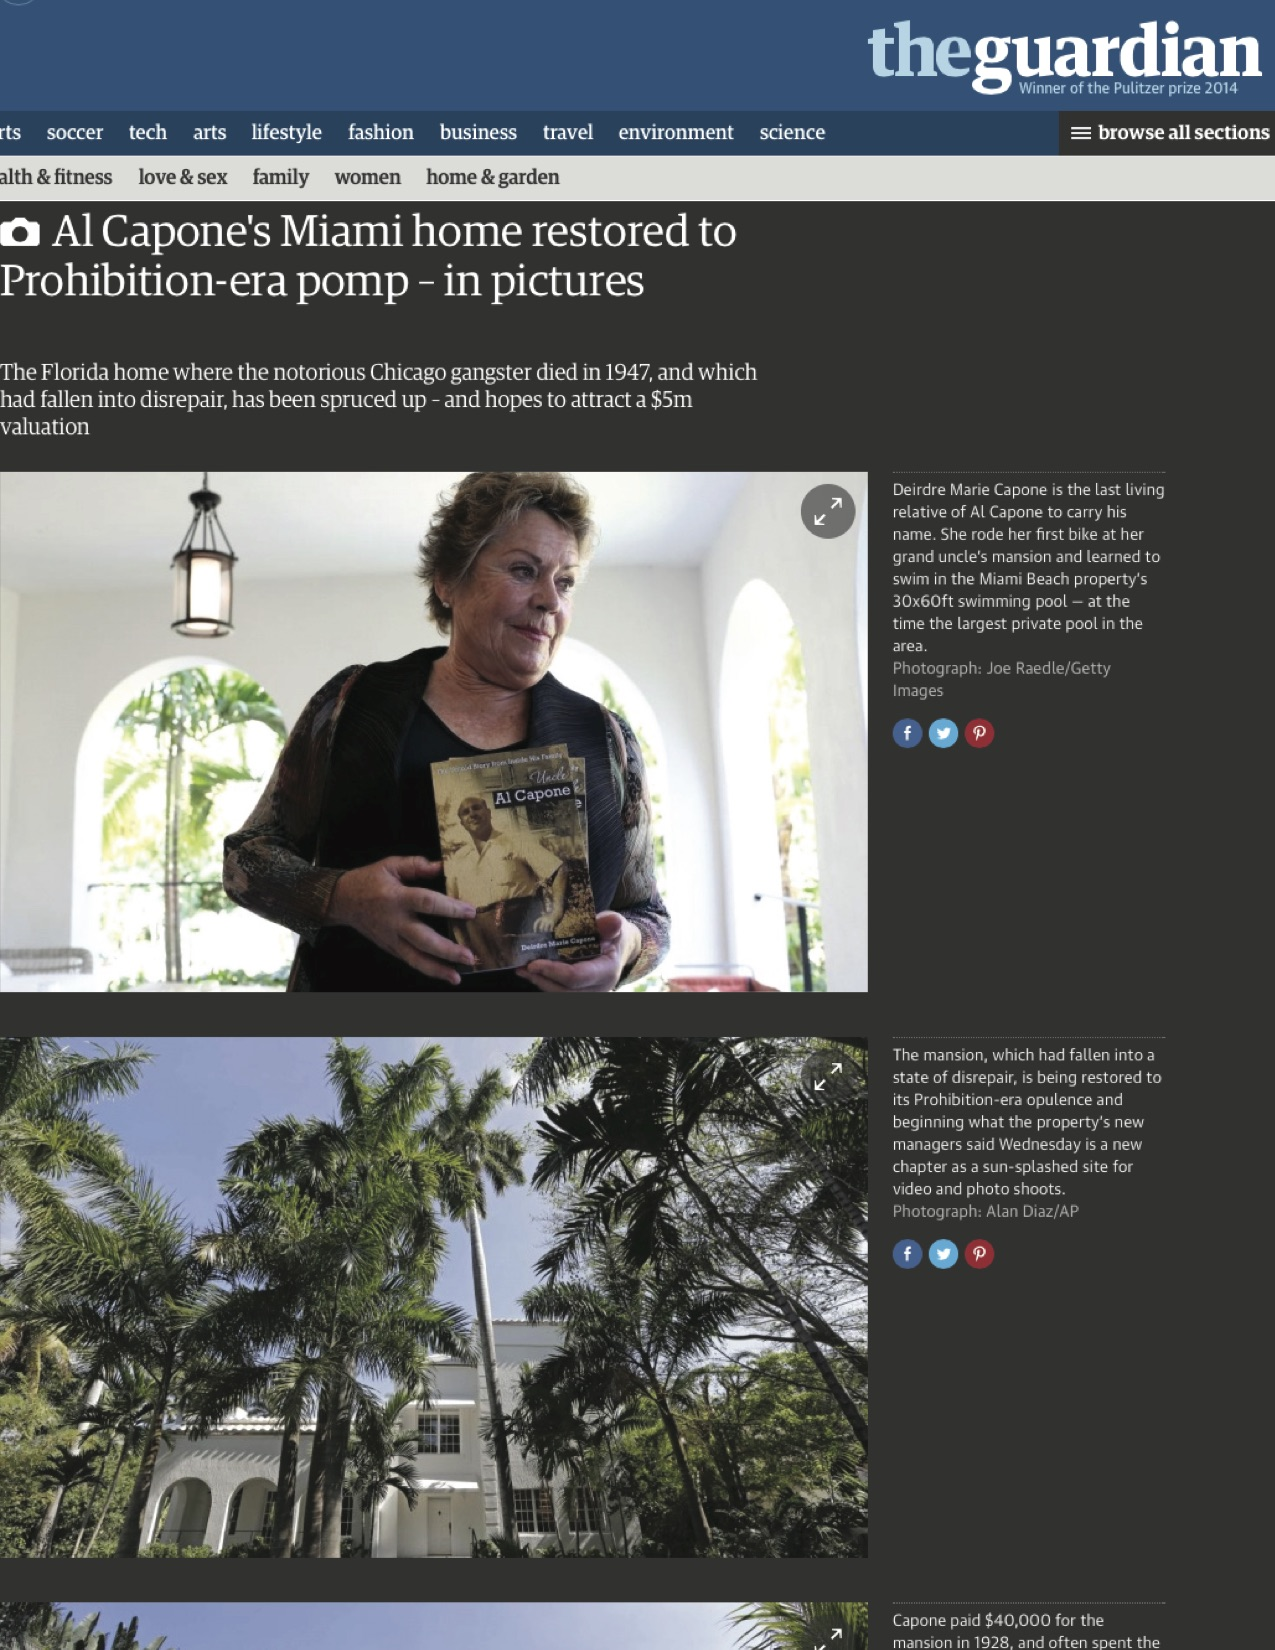 """<p><strong>The Guardian</strong><a href=""""http://www.theguardian.com/lifeandstyle/gallery/2015/mar/18/al-capone-miami-beach-home-restored"""" target=""""_blank"""">View Article →</a></p>"""